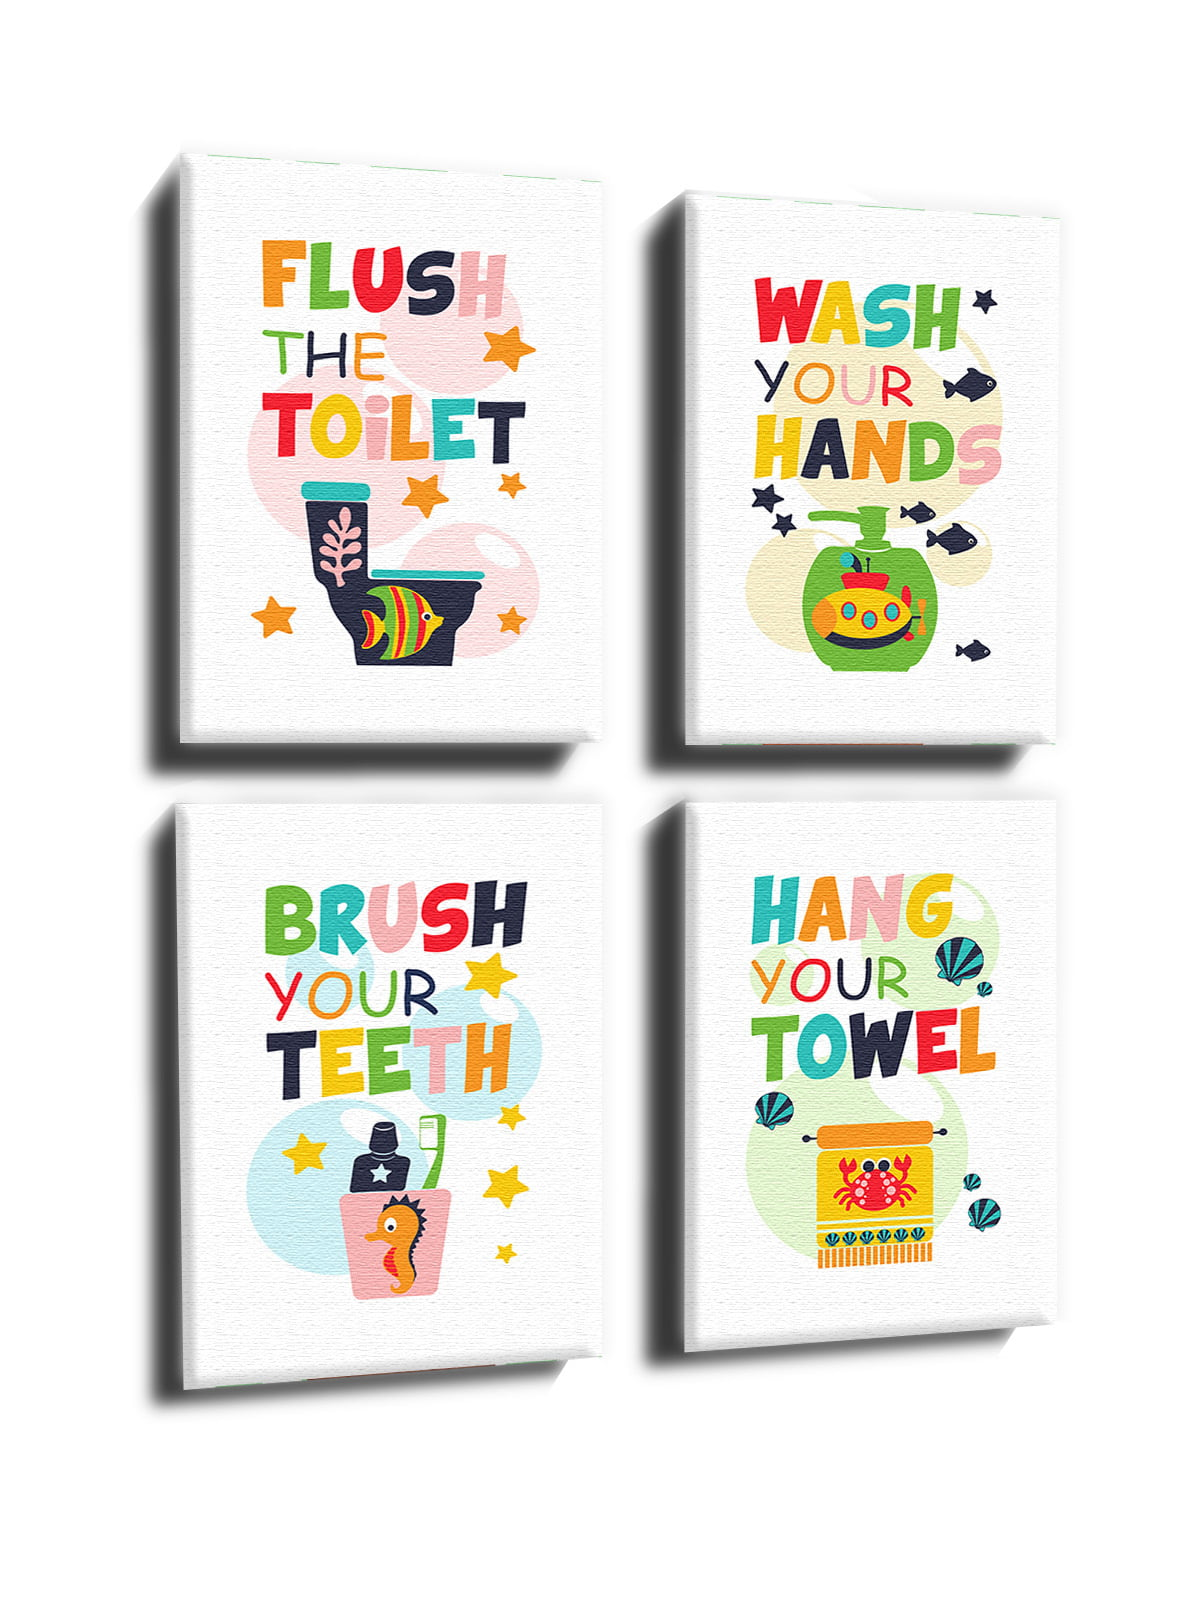 Awkward Styles Kids Bathroom Framed Canvas Wall Decor Set Of Four Wall Art For Home Gifts Kids Bathroom Decor Bathroom Wall Art For Children Colorful Decals Set Of 4 Printed Quotes For